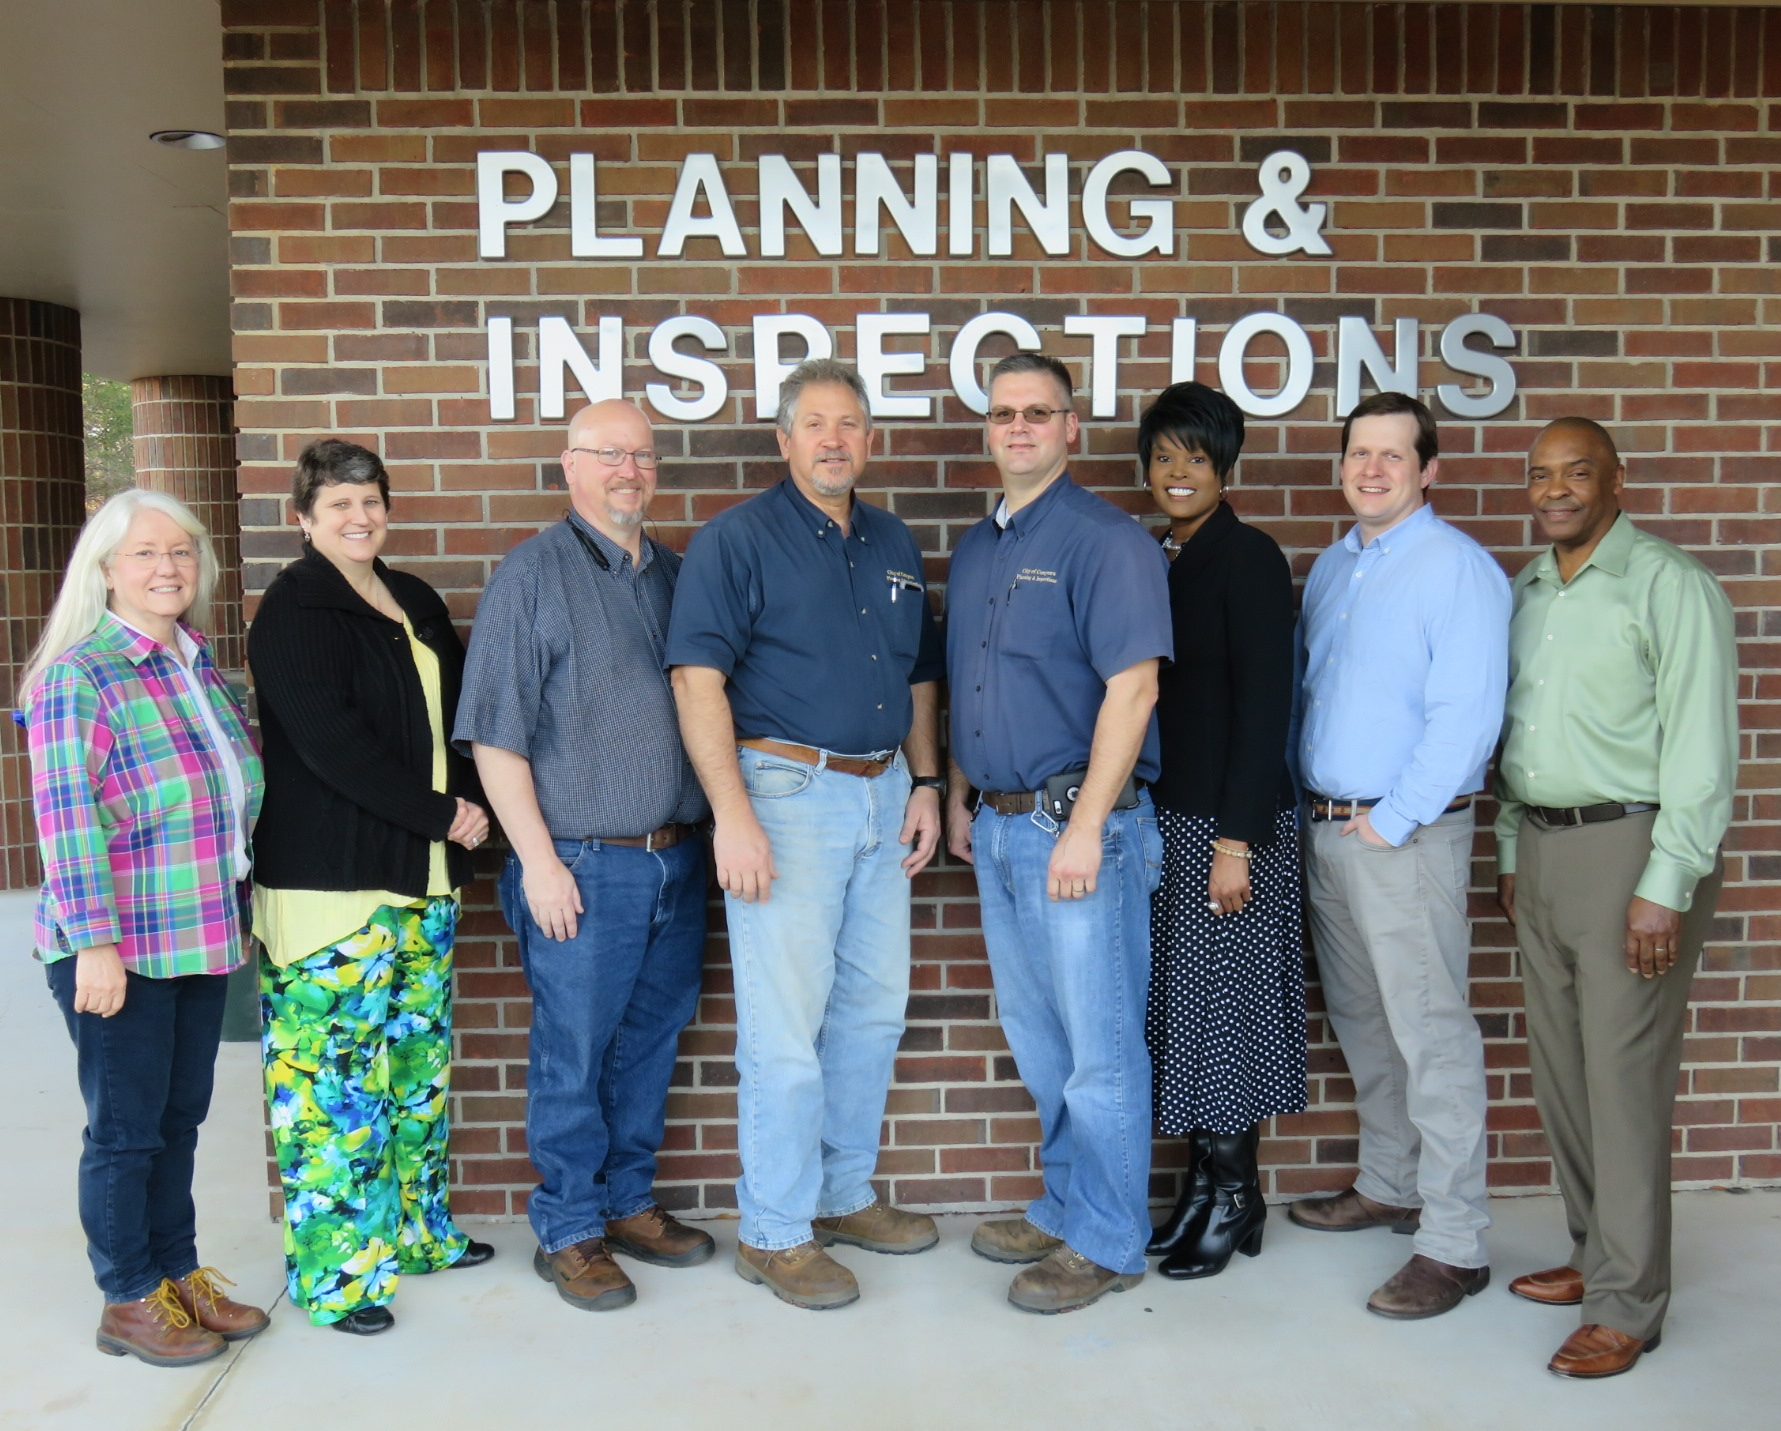 Planning & Inspections Group Photo 1